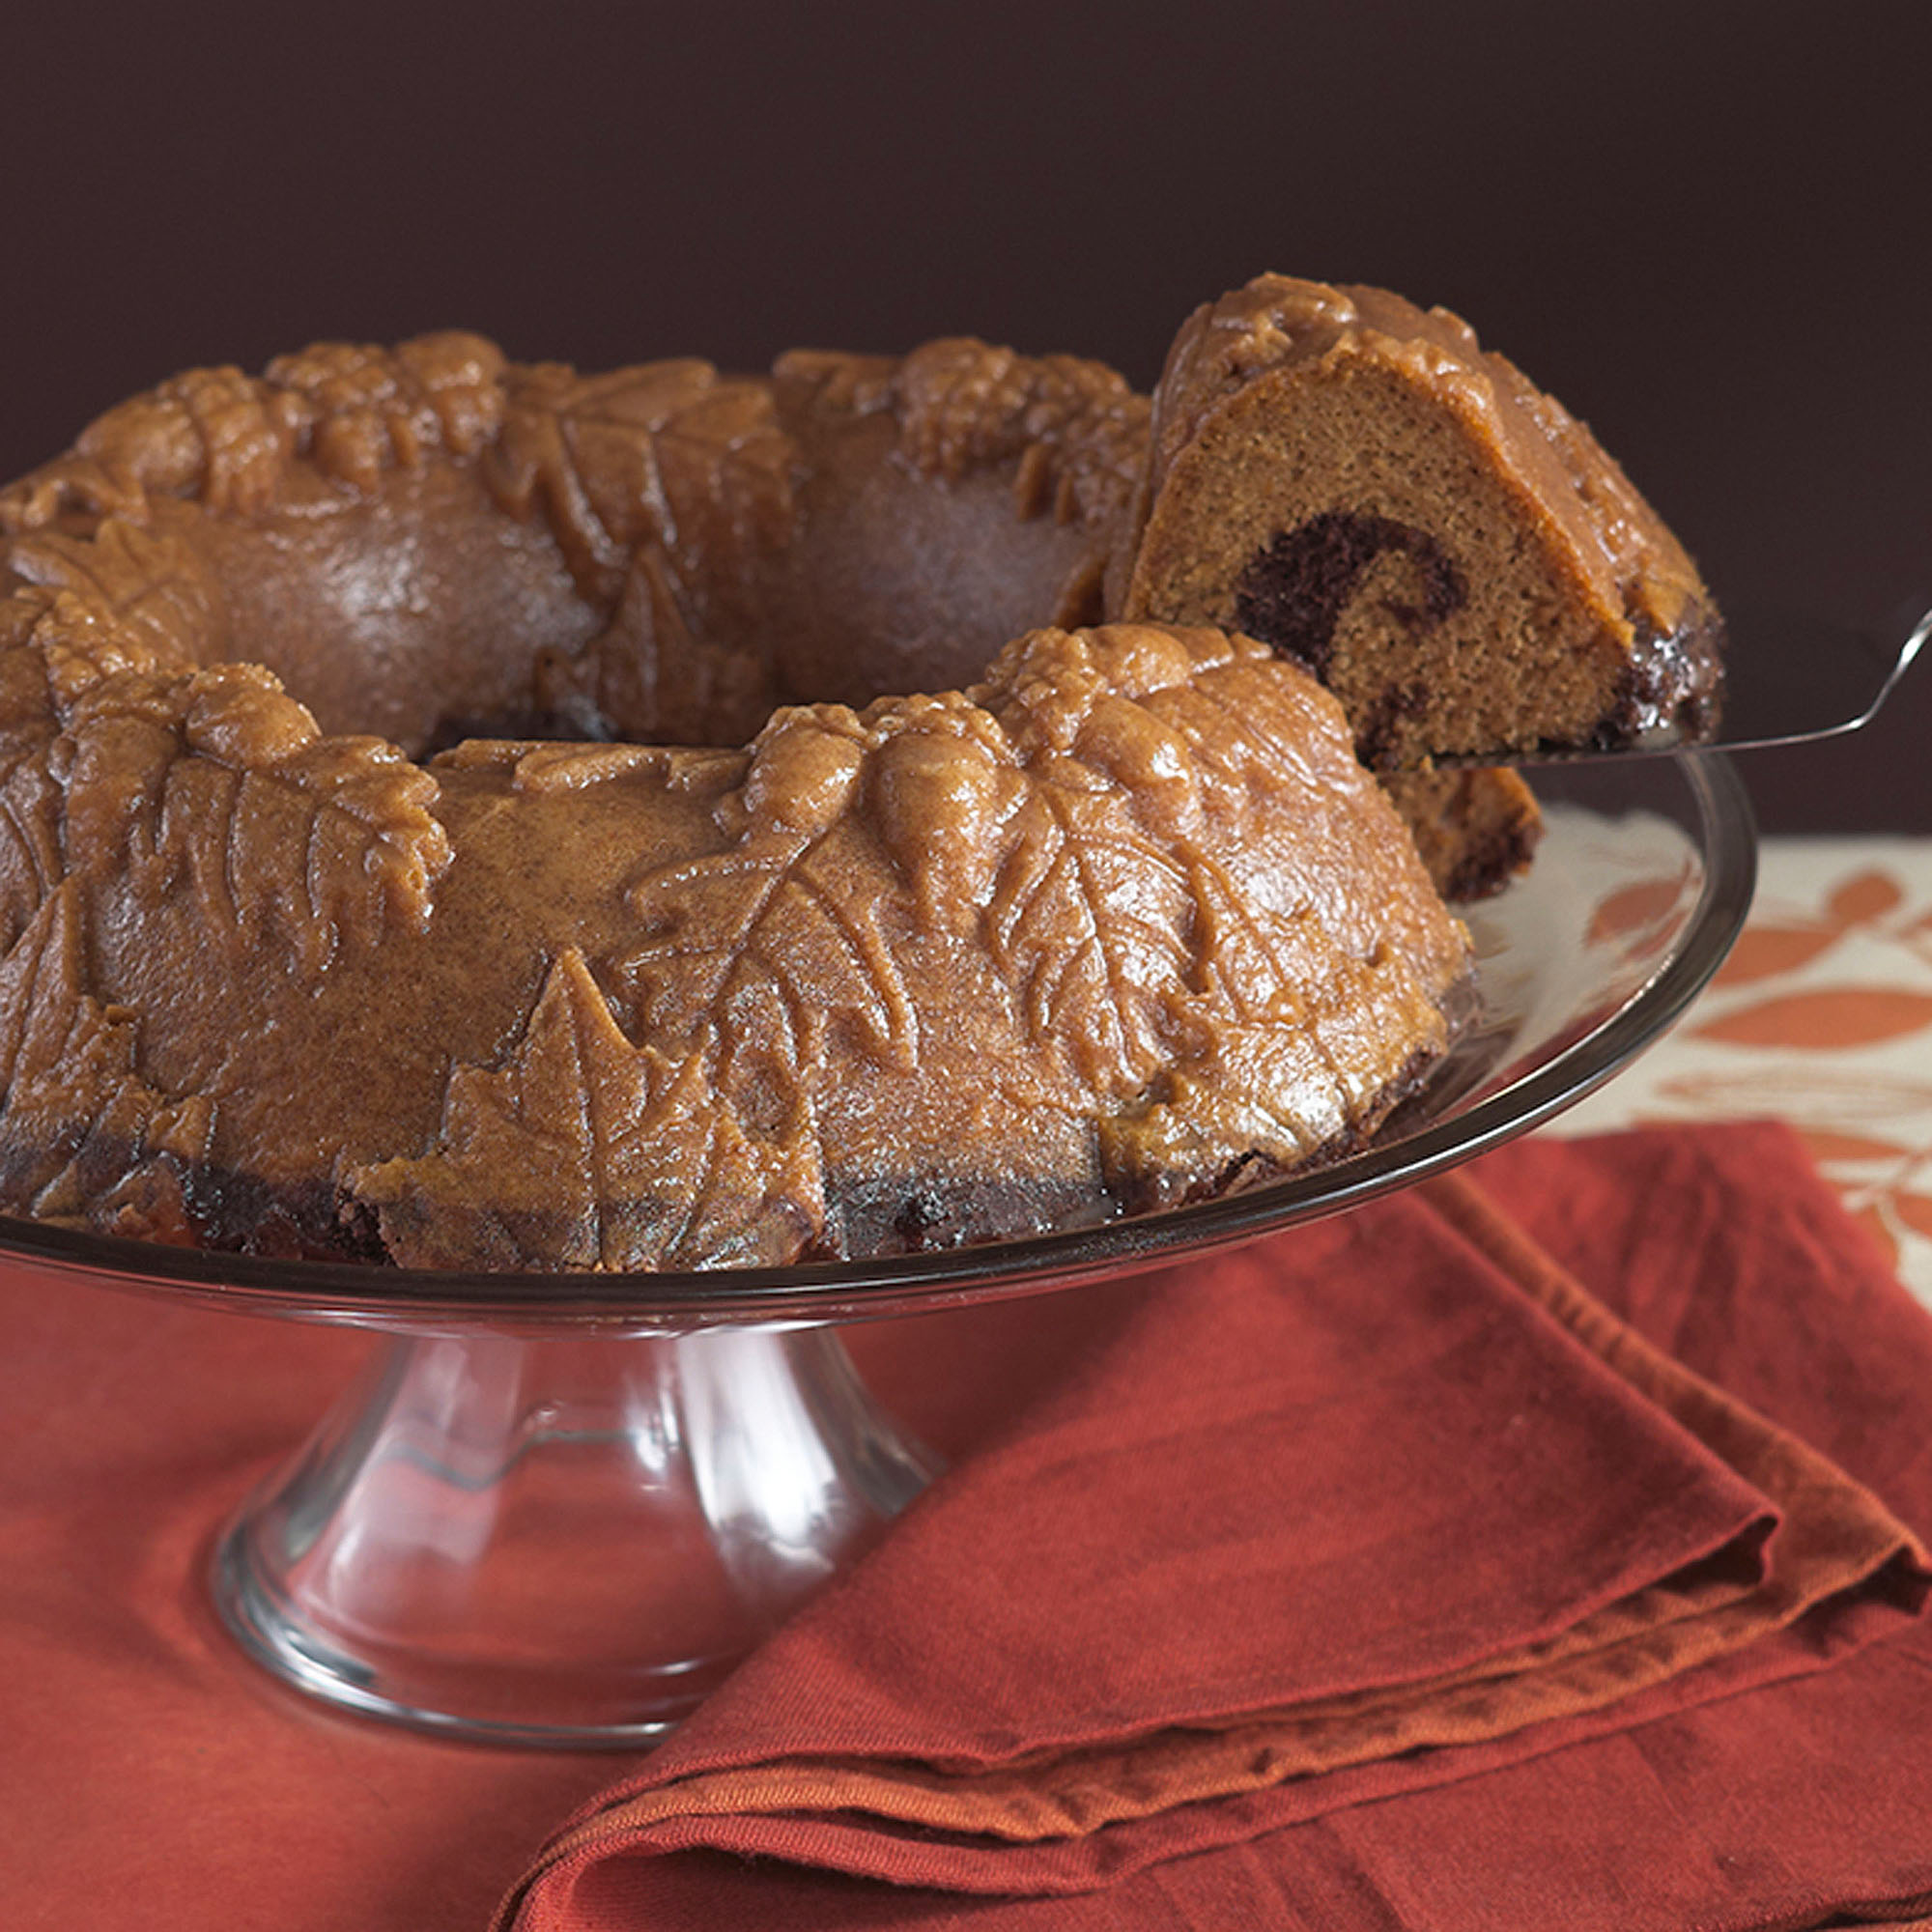 Nordic Ware Autumn Wreath Bundt Pan by Northland Aluminum Products